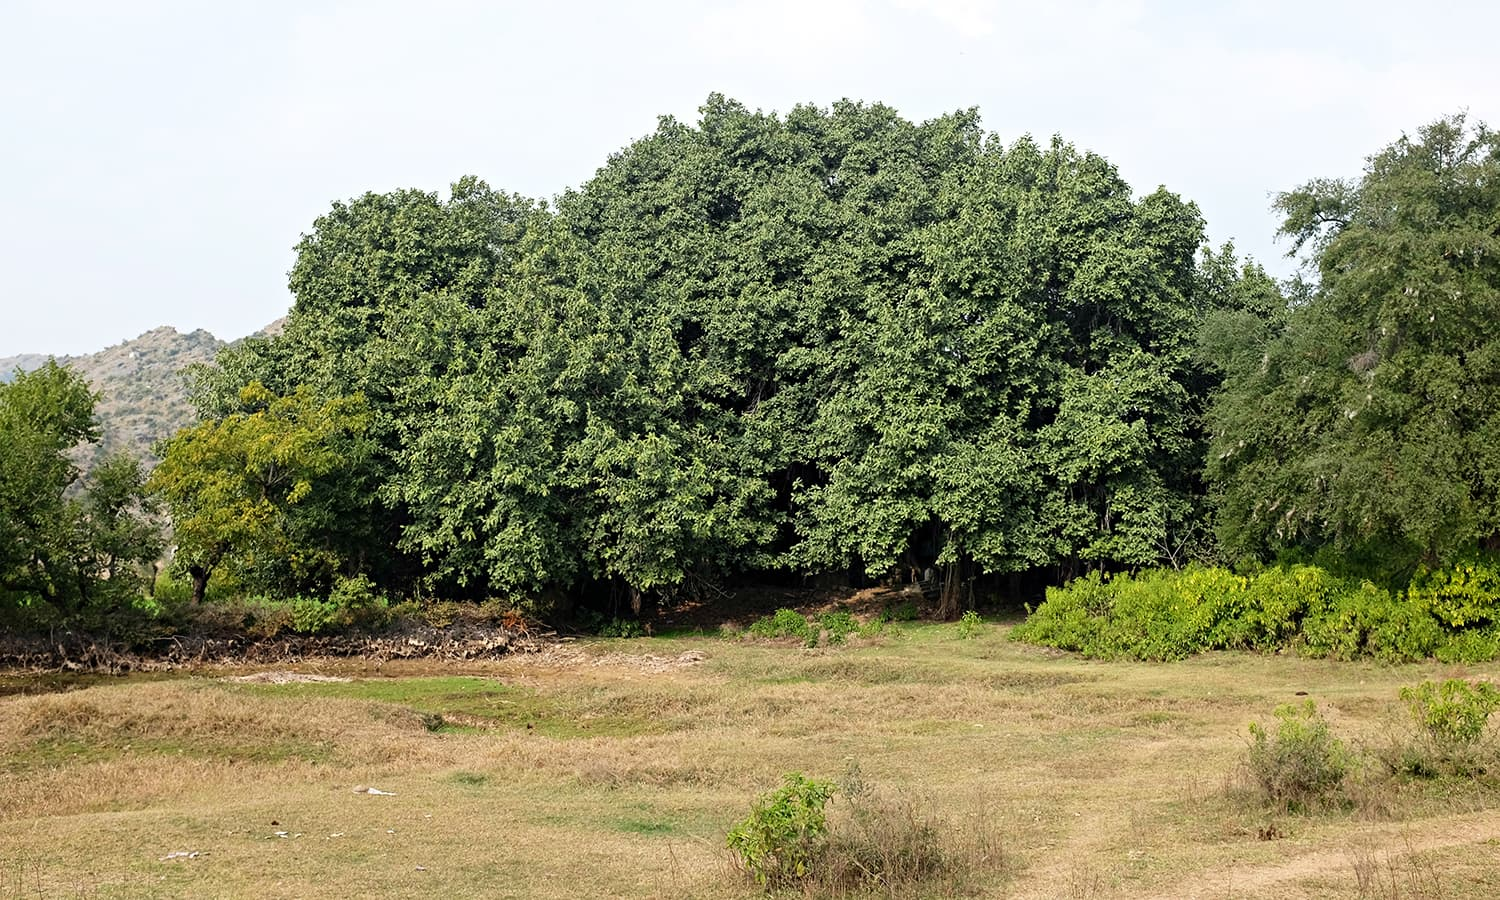 I spot a banyan tree in the distance.